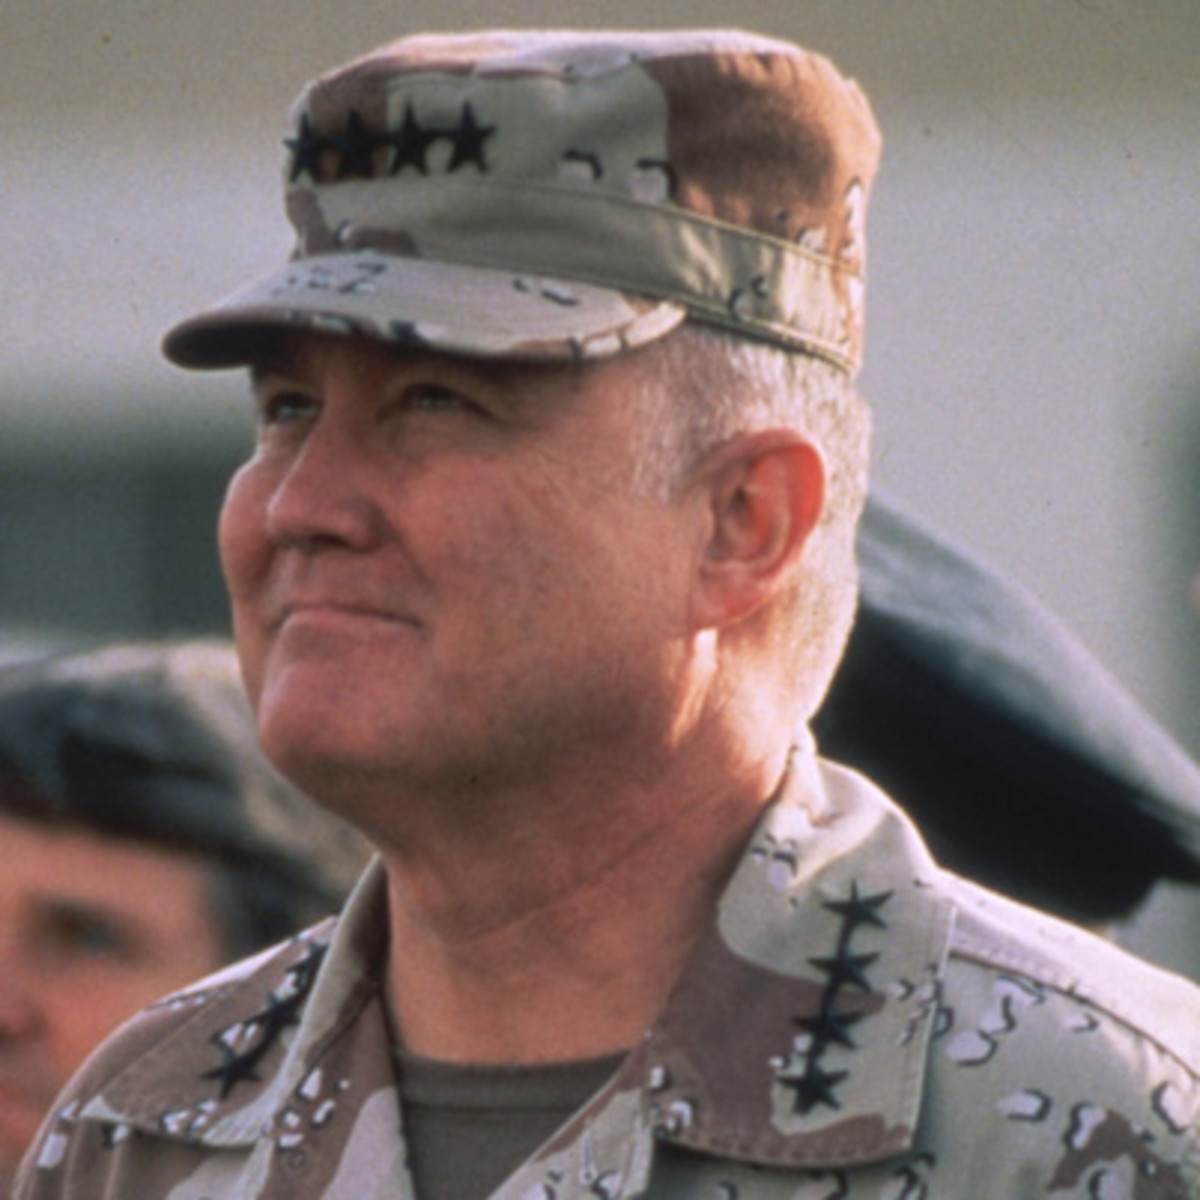 the career of the us general norman schwarzkopf General norman schwarzkopf (left) and iraqi lieutenant-general the career of the us general norman schwarzkopf sultan hashim ahmed salute each other following their ceasefire and surrender term meetings during the.